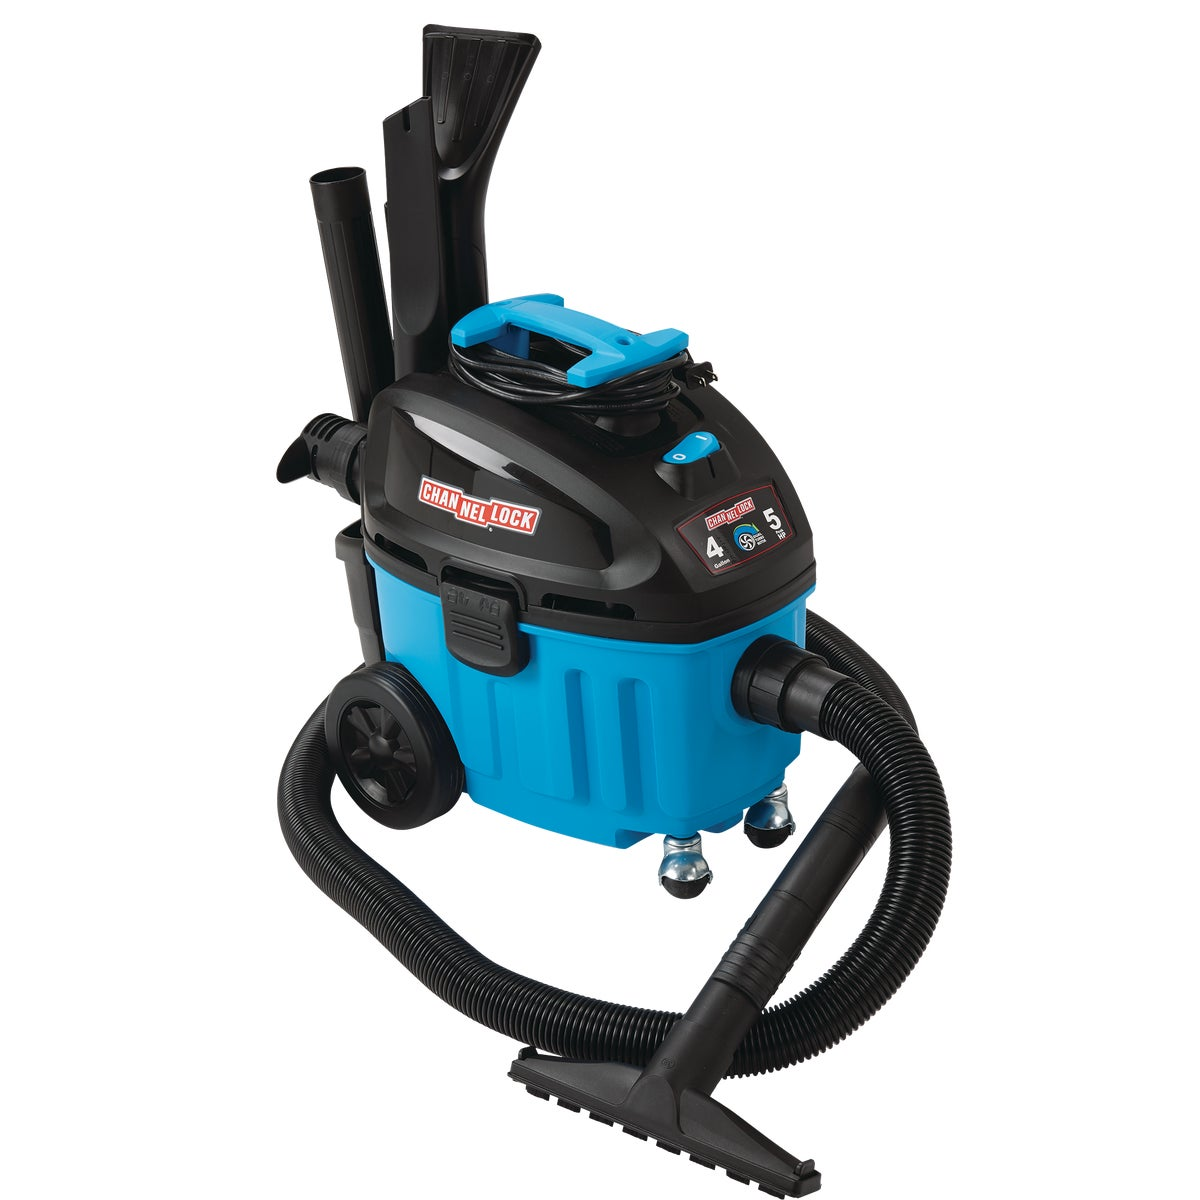 Channellock 4 Gal. Contractor Wet/Dry Vacuum, VE410P.CL